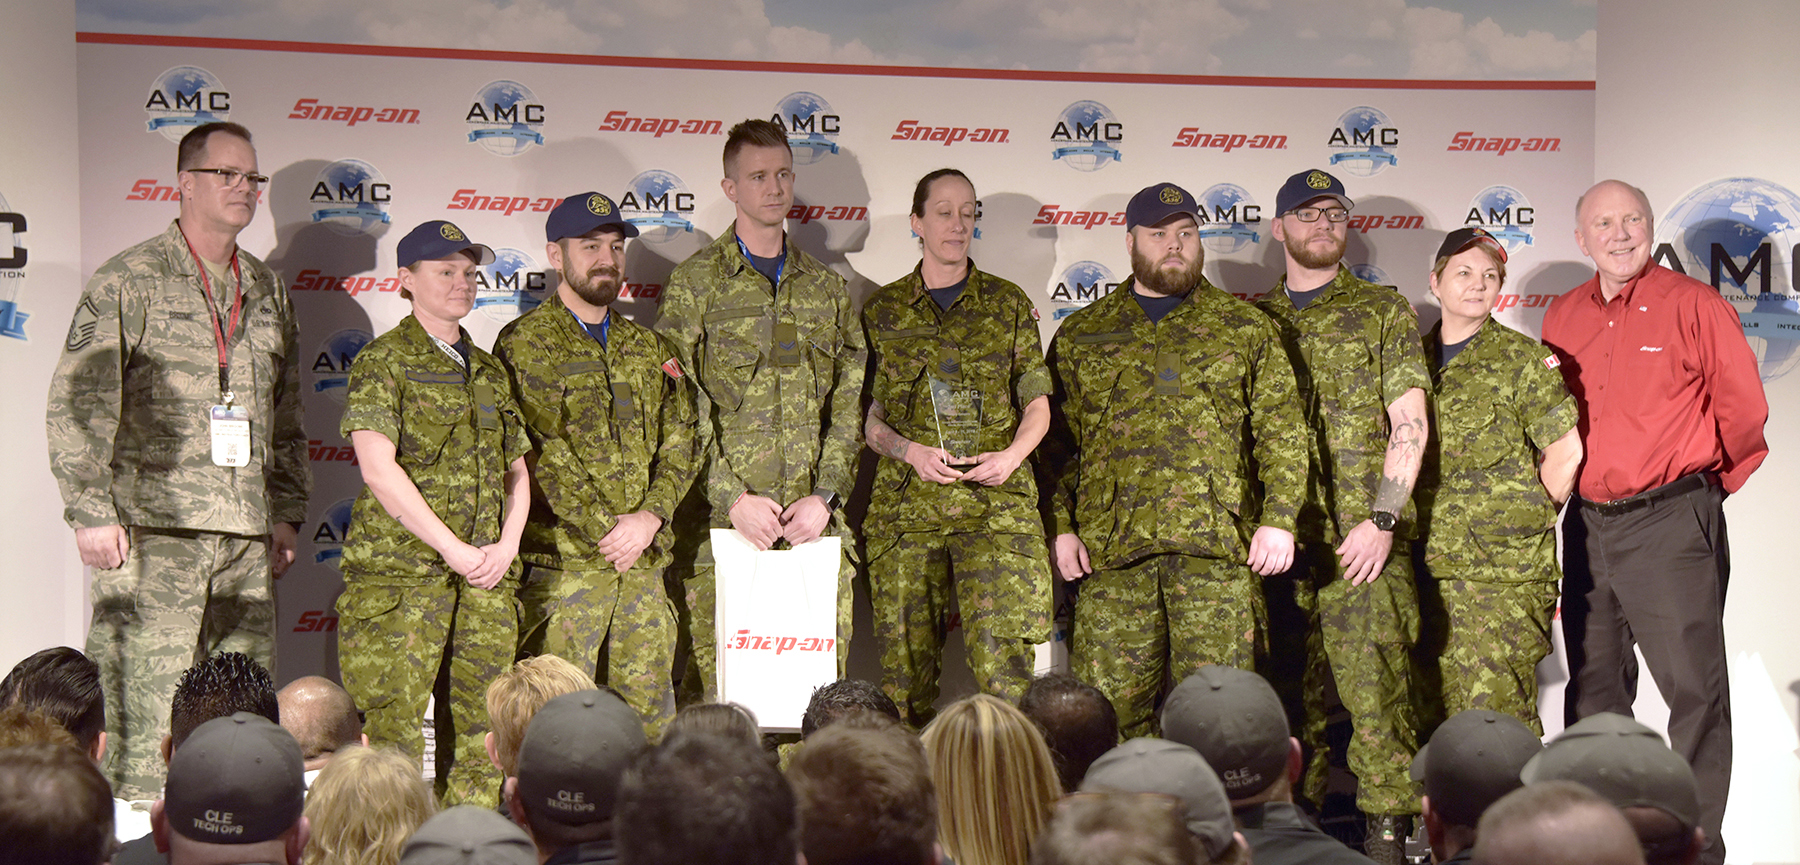 Seven people wearing Canadian disruptive pattern military uniforms, flanked by a person wearing a different disruptive pattern uniform and a person in civilian clothes, stand in a row on a stage.